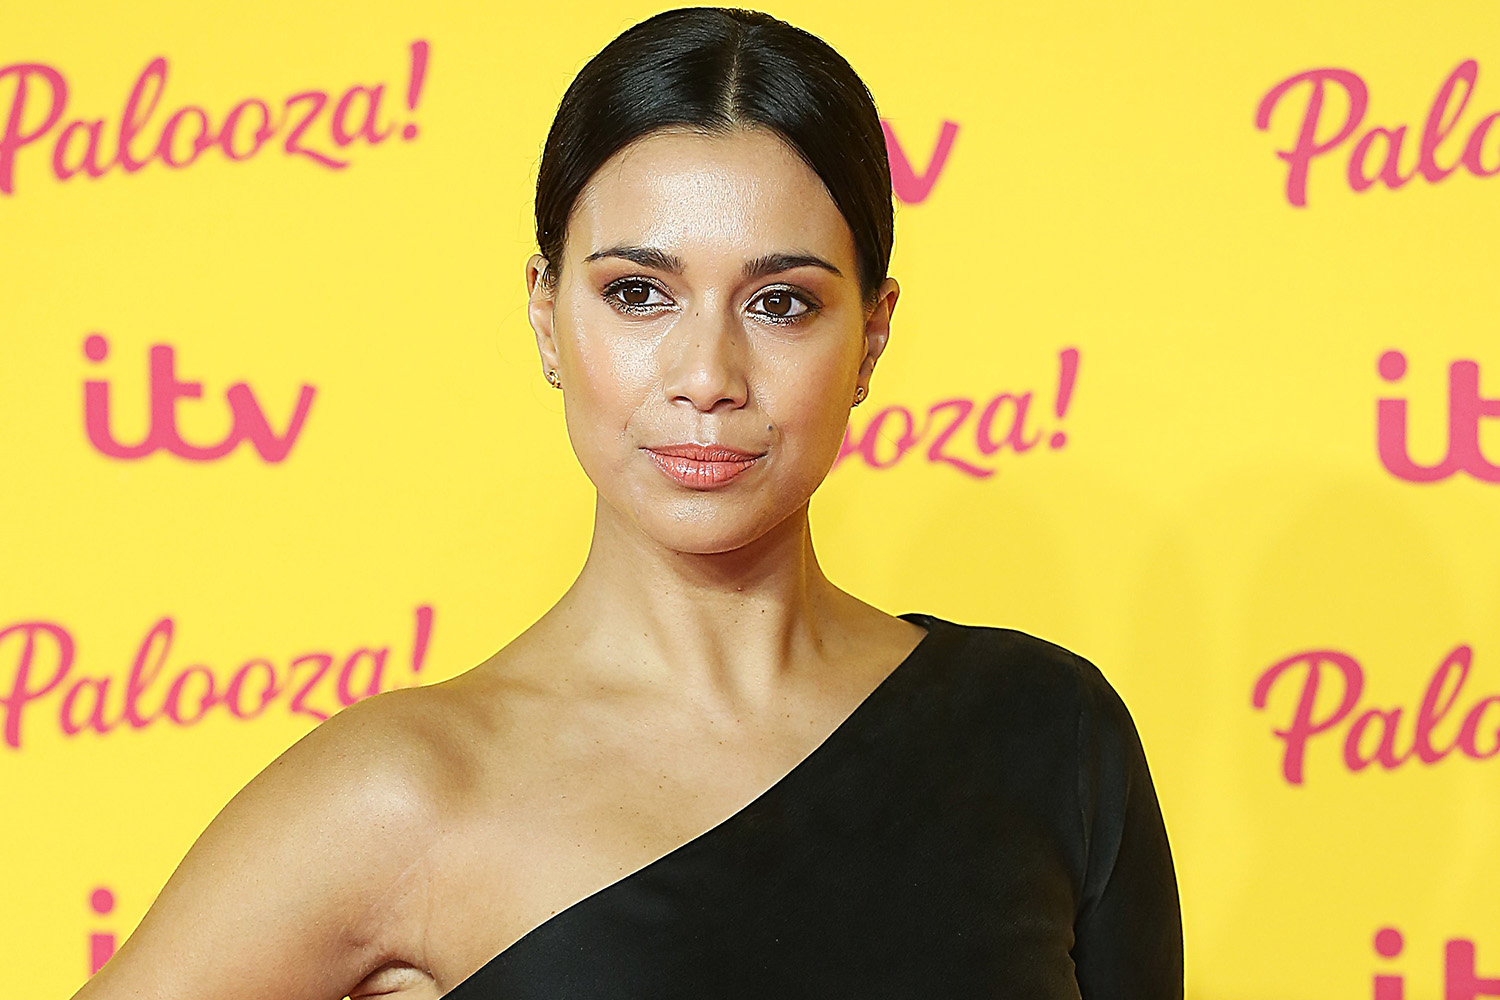 Emmerdale star Fiona Wade hints she could quit soap